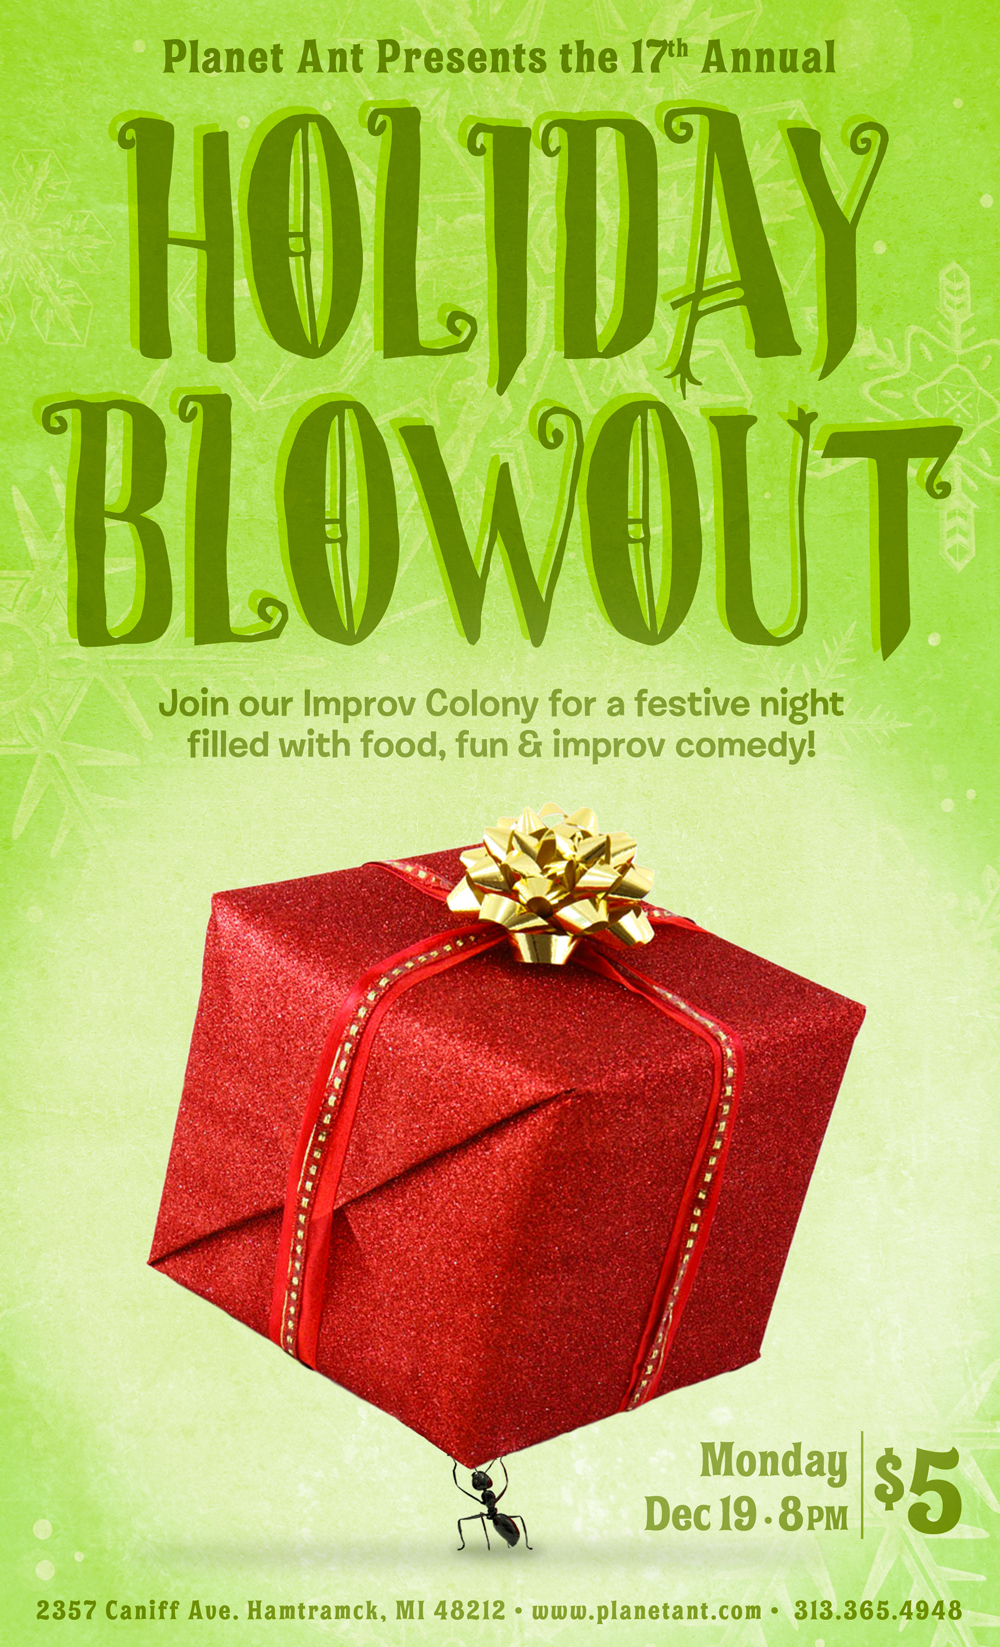 Holiday Blowout Poster